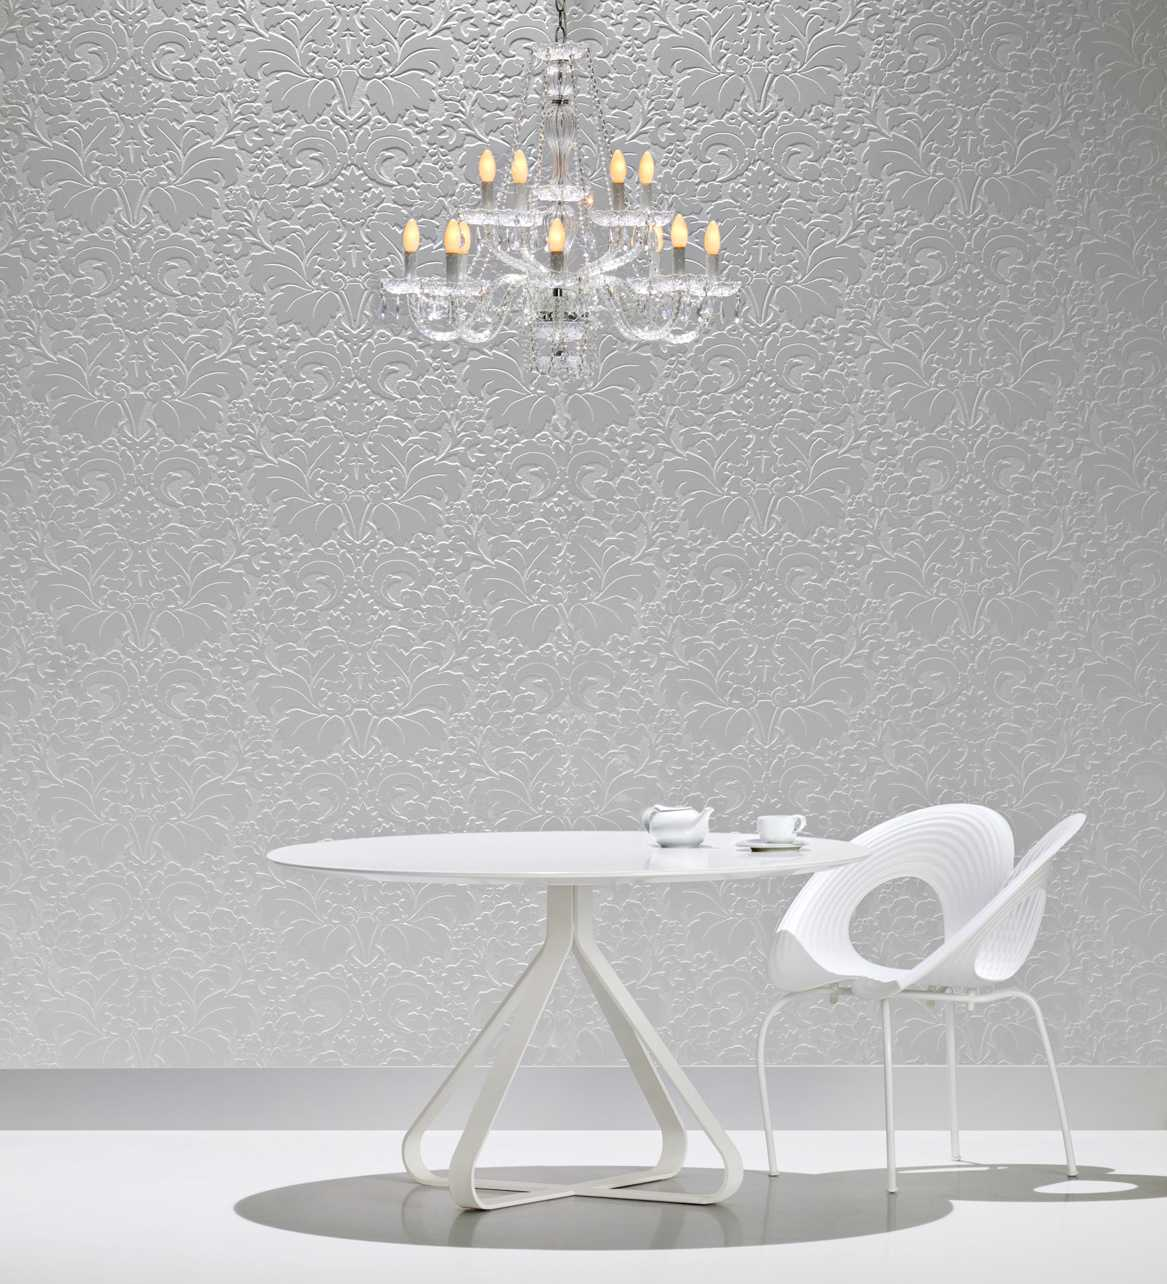 Elegant Textured Surface Ideas by caesarstone plus white table and white chair plus chandelier for coffee room ideas